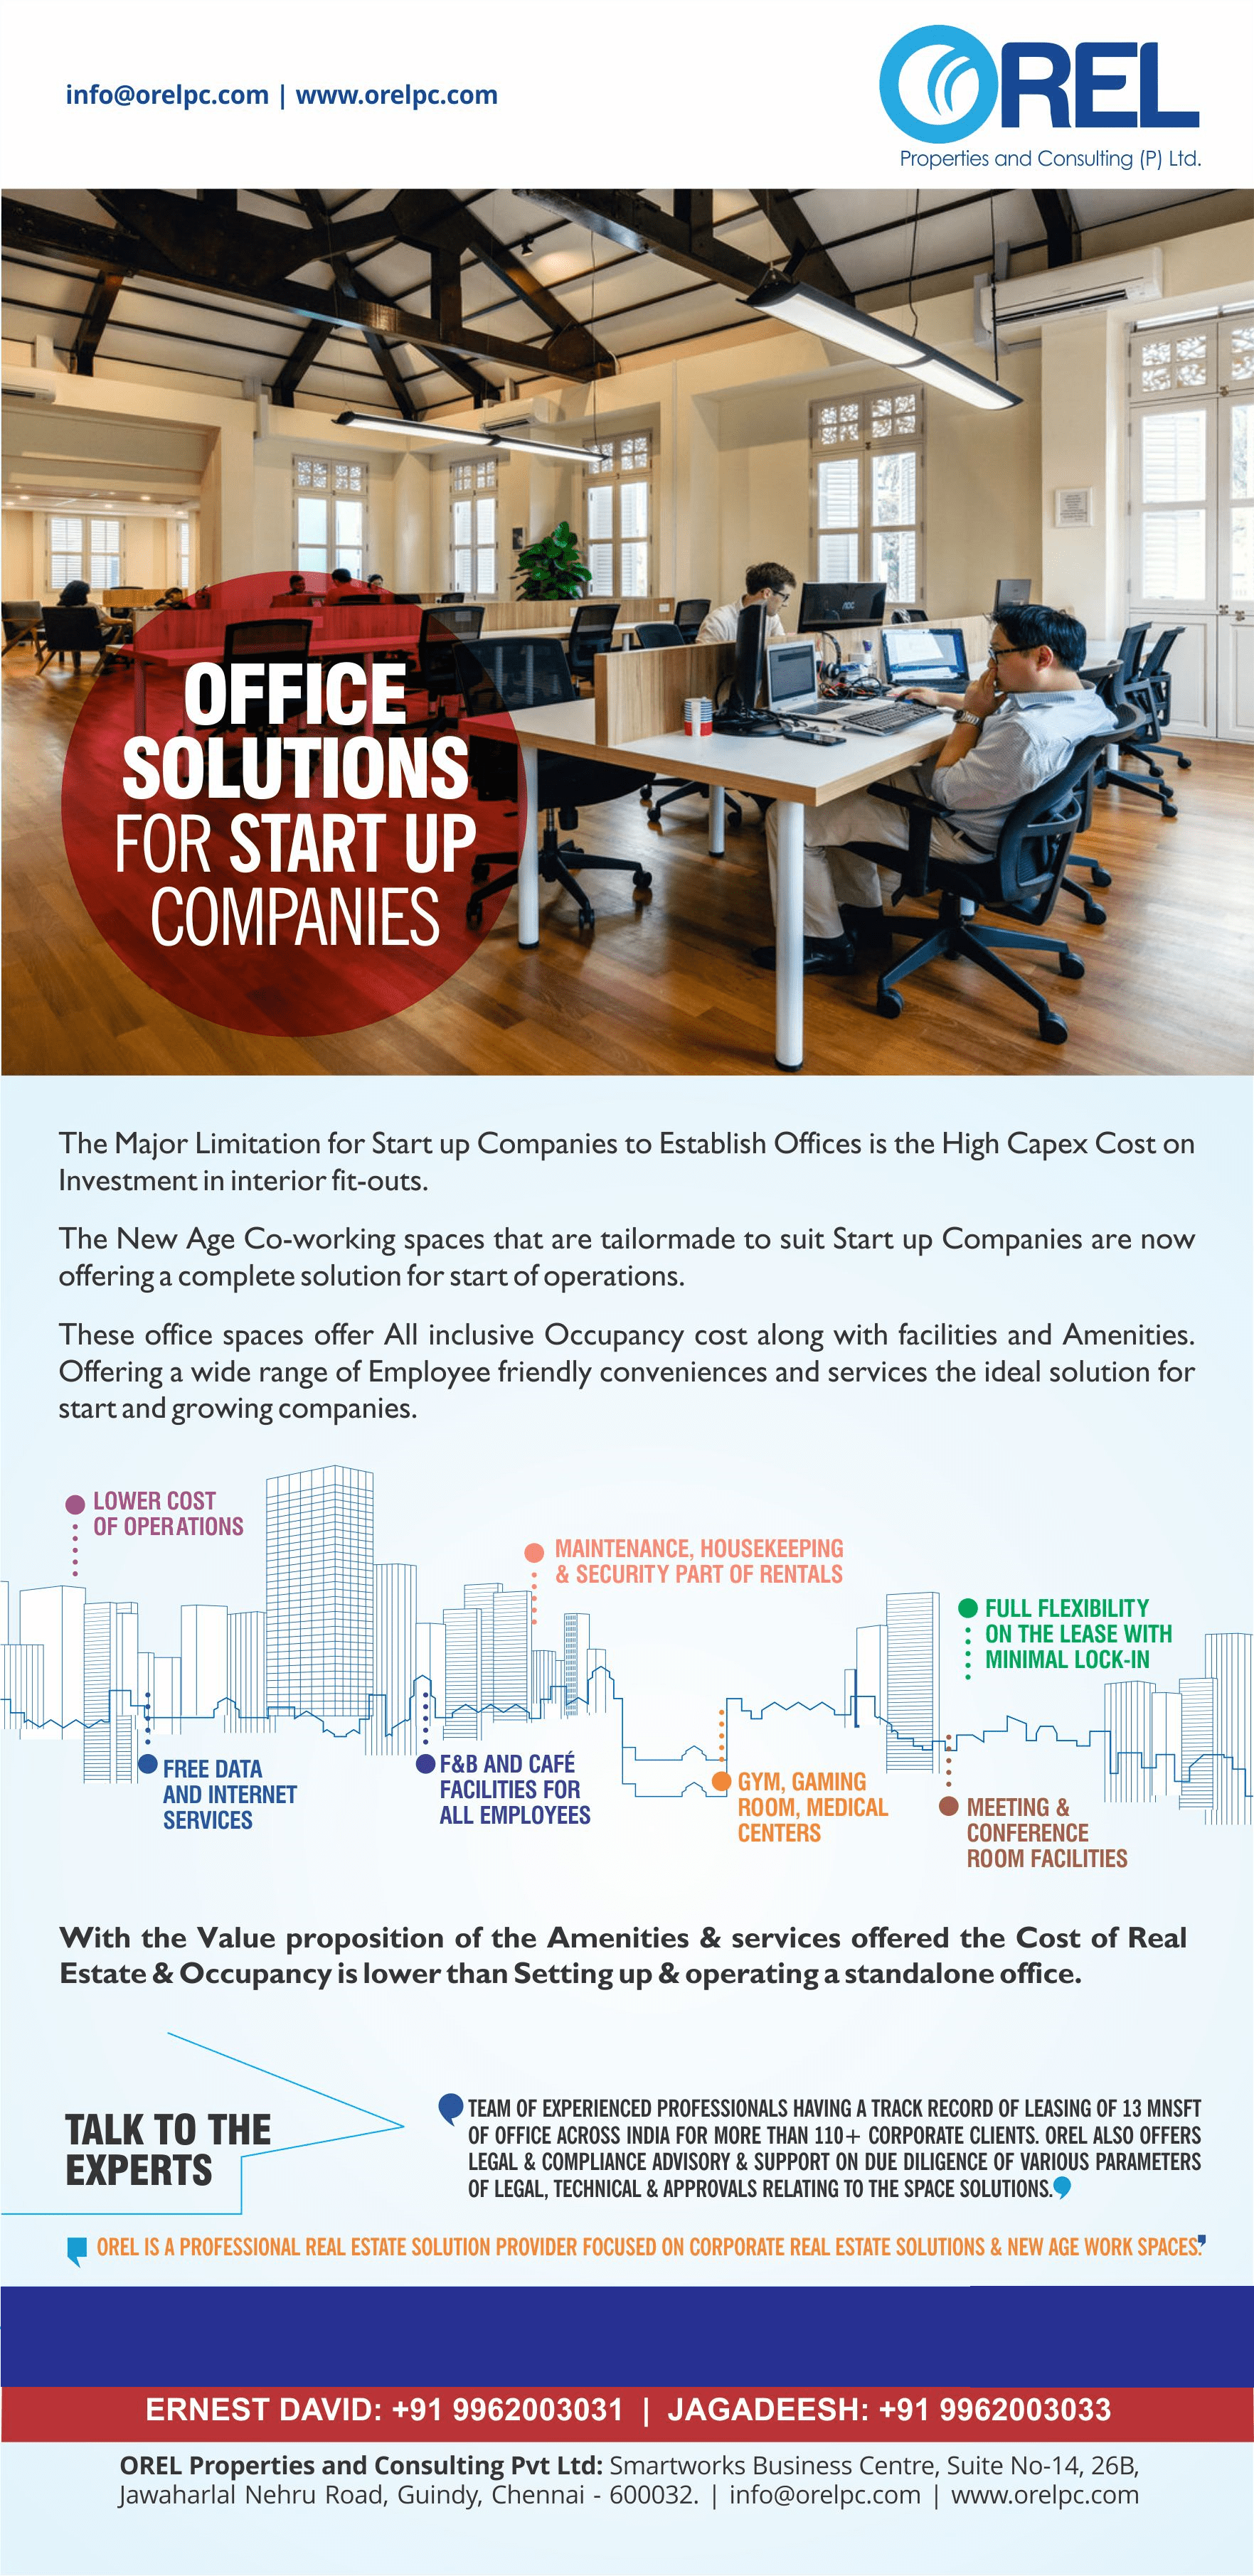 Offices Solutions for Start up Companies